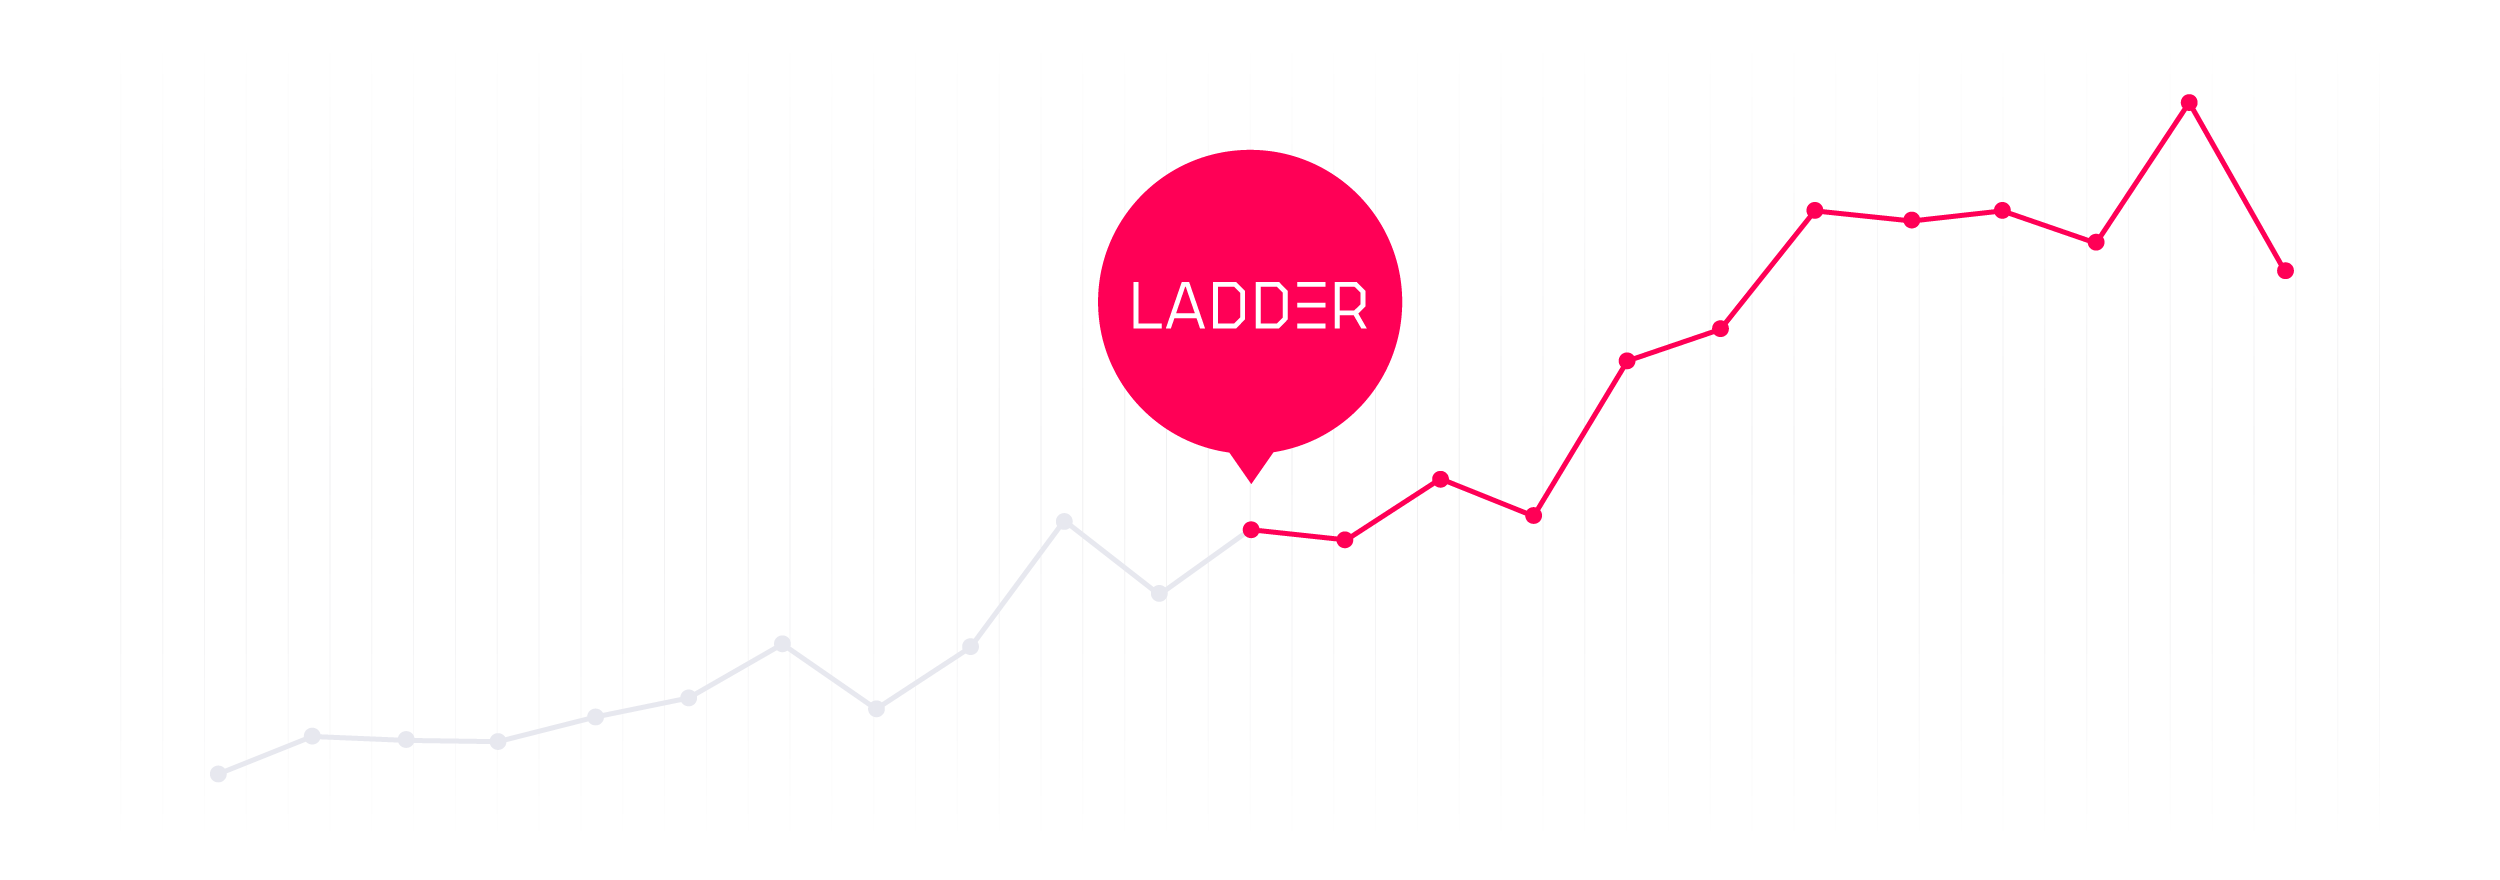 232% Increase in eCommerce Revenue via the Ladder Growth Testing Process [Case Study]